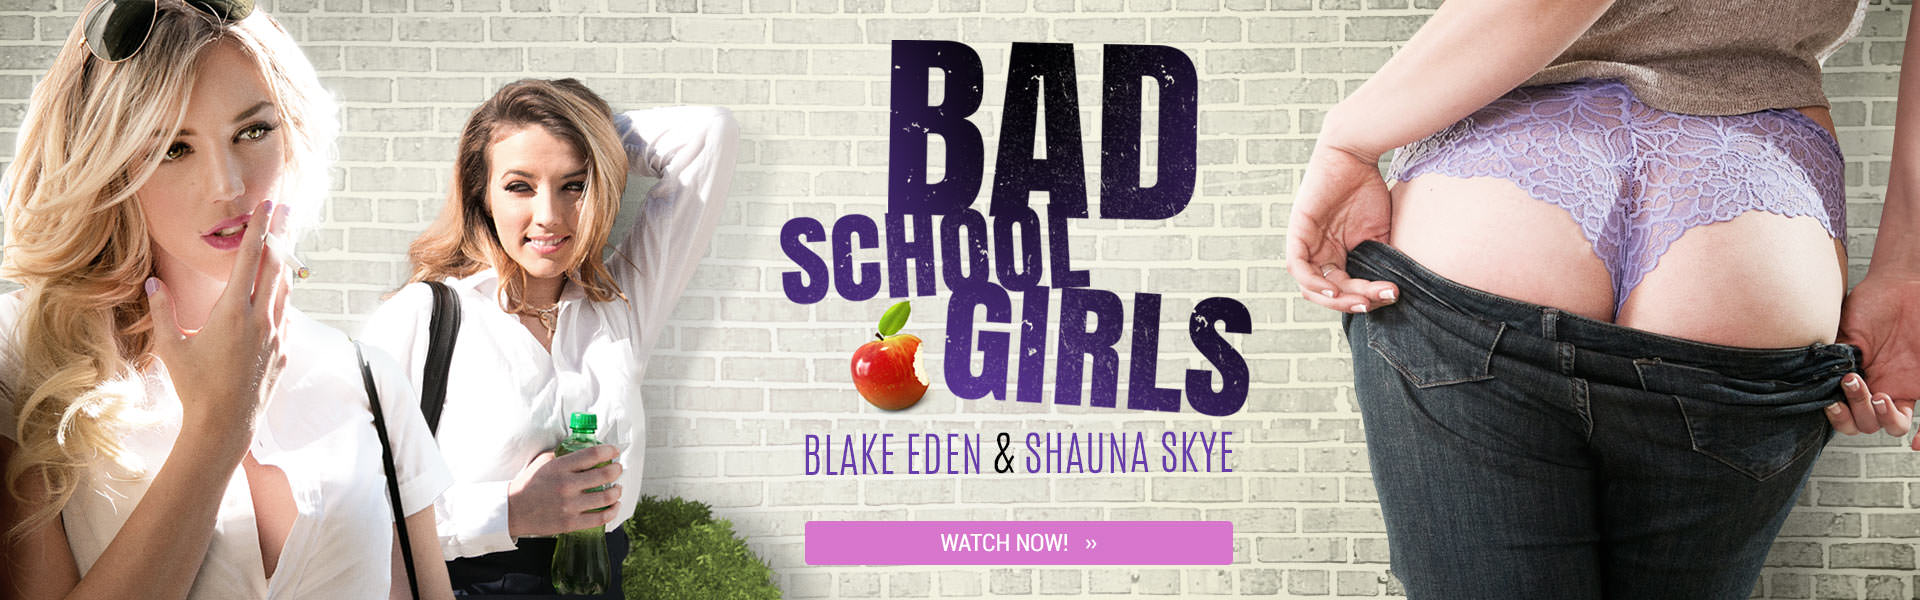 Bad school girls with Blake Eden & Shauna Skye